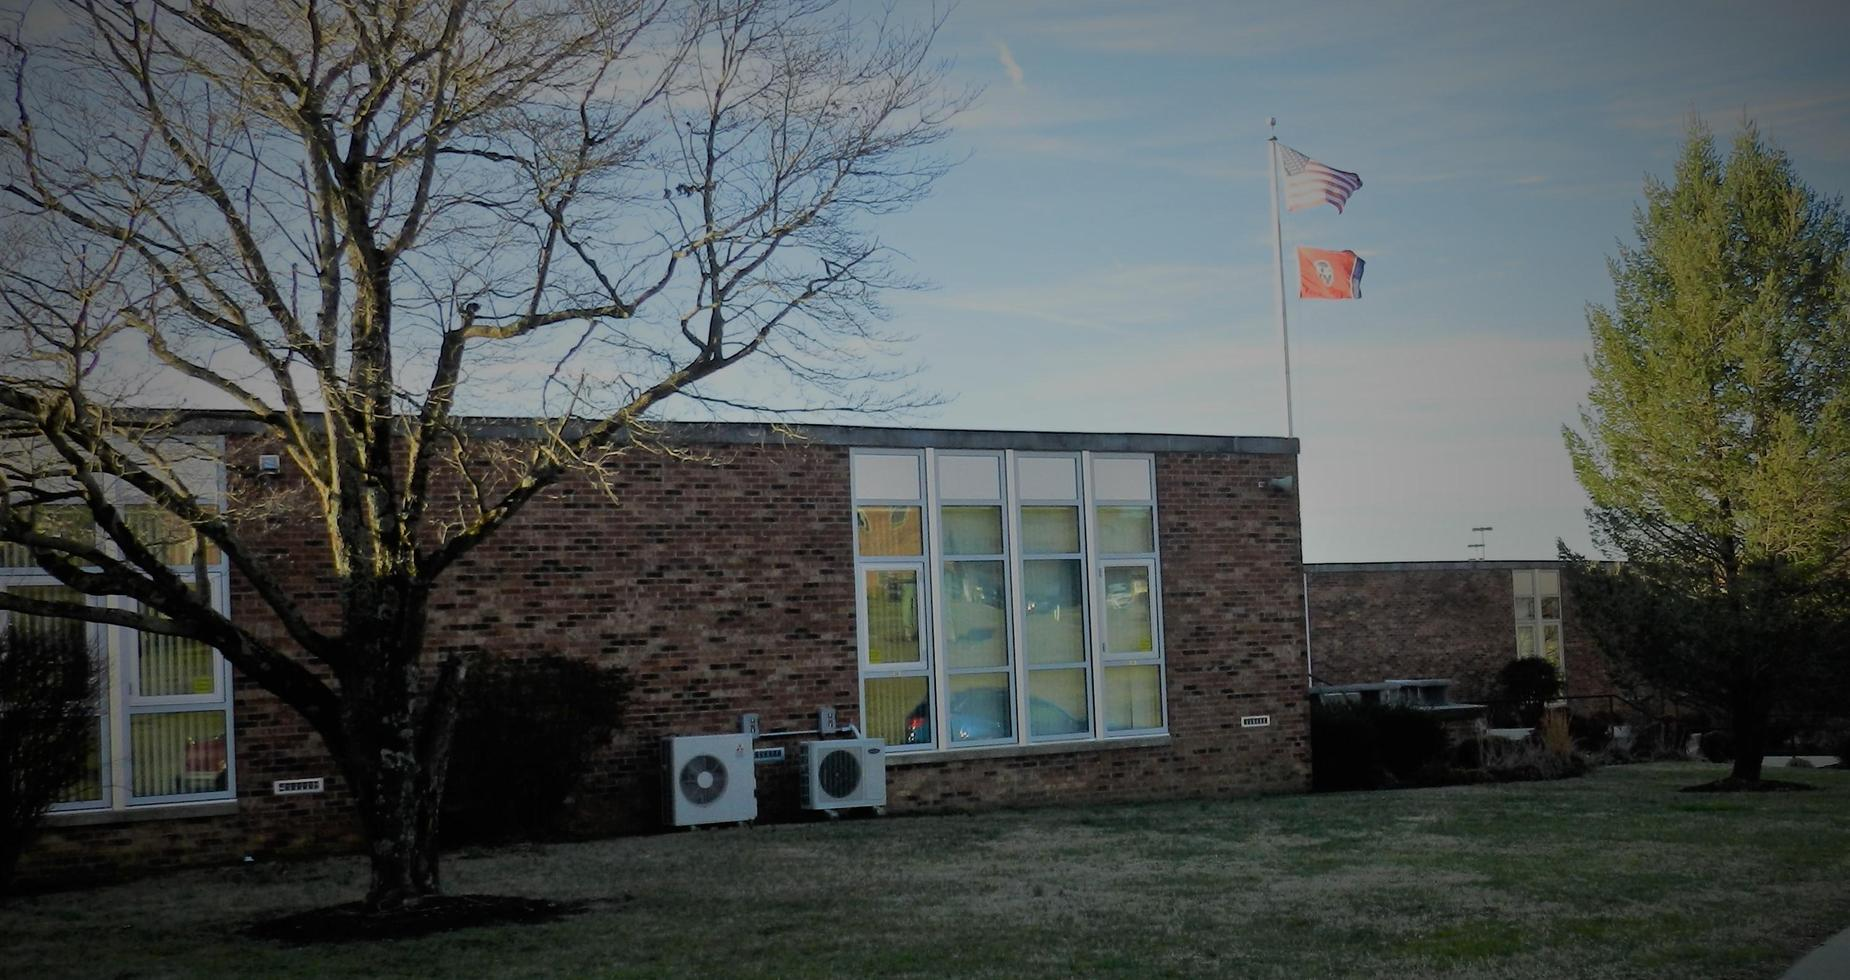 a picture of a school